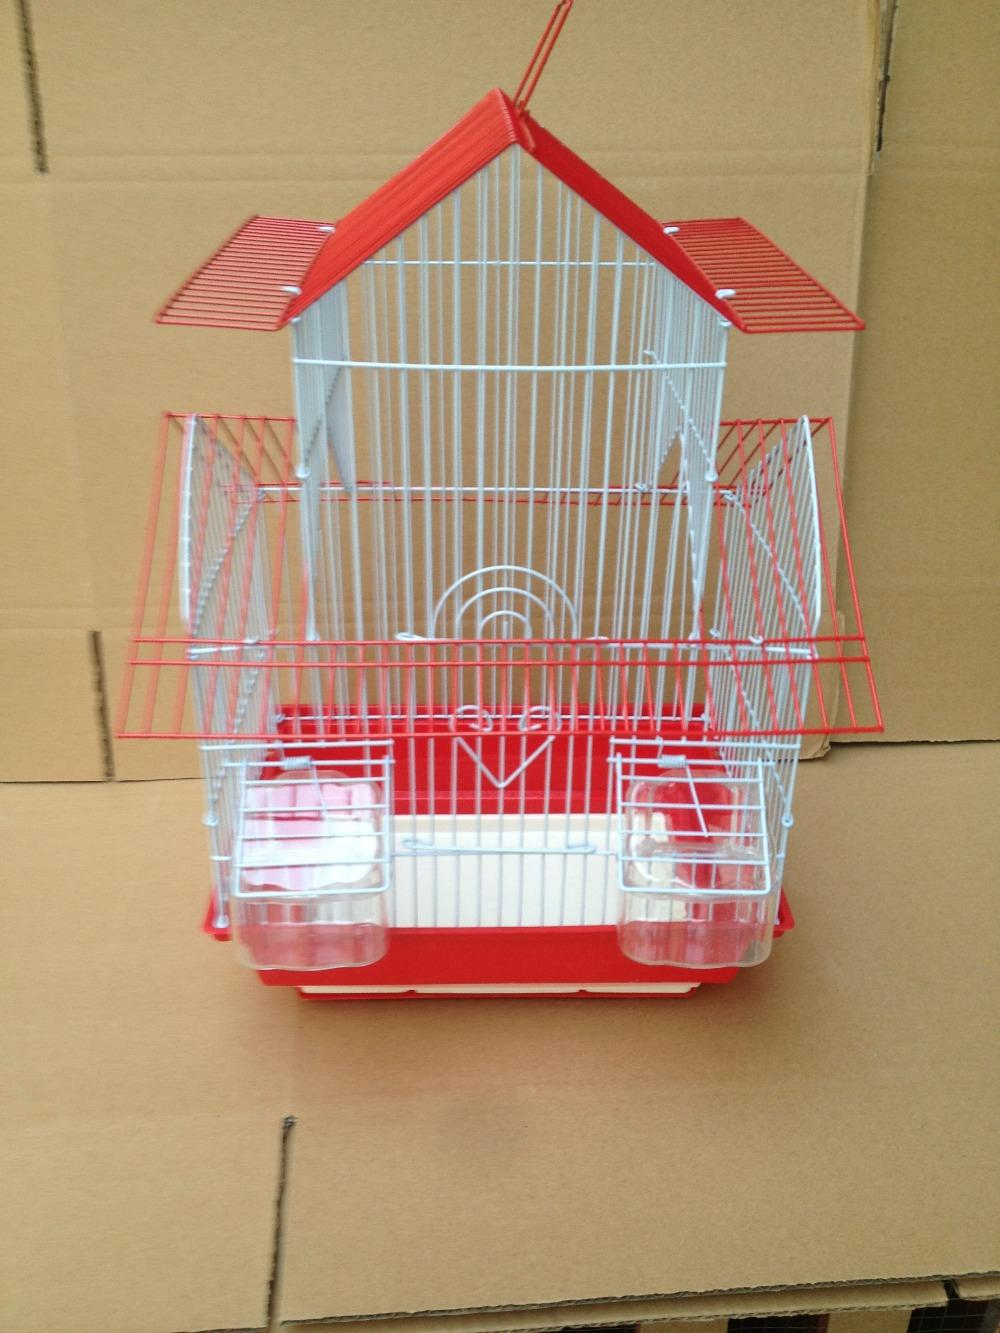 Choose the right bird cage for your feathered friend. Find roomy flight cages and stylish cages crafted from safe, high-quality materials. For birds of every size, from finches to parrots.